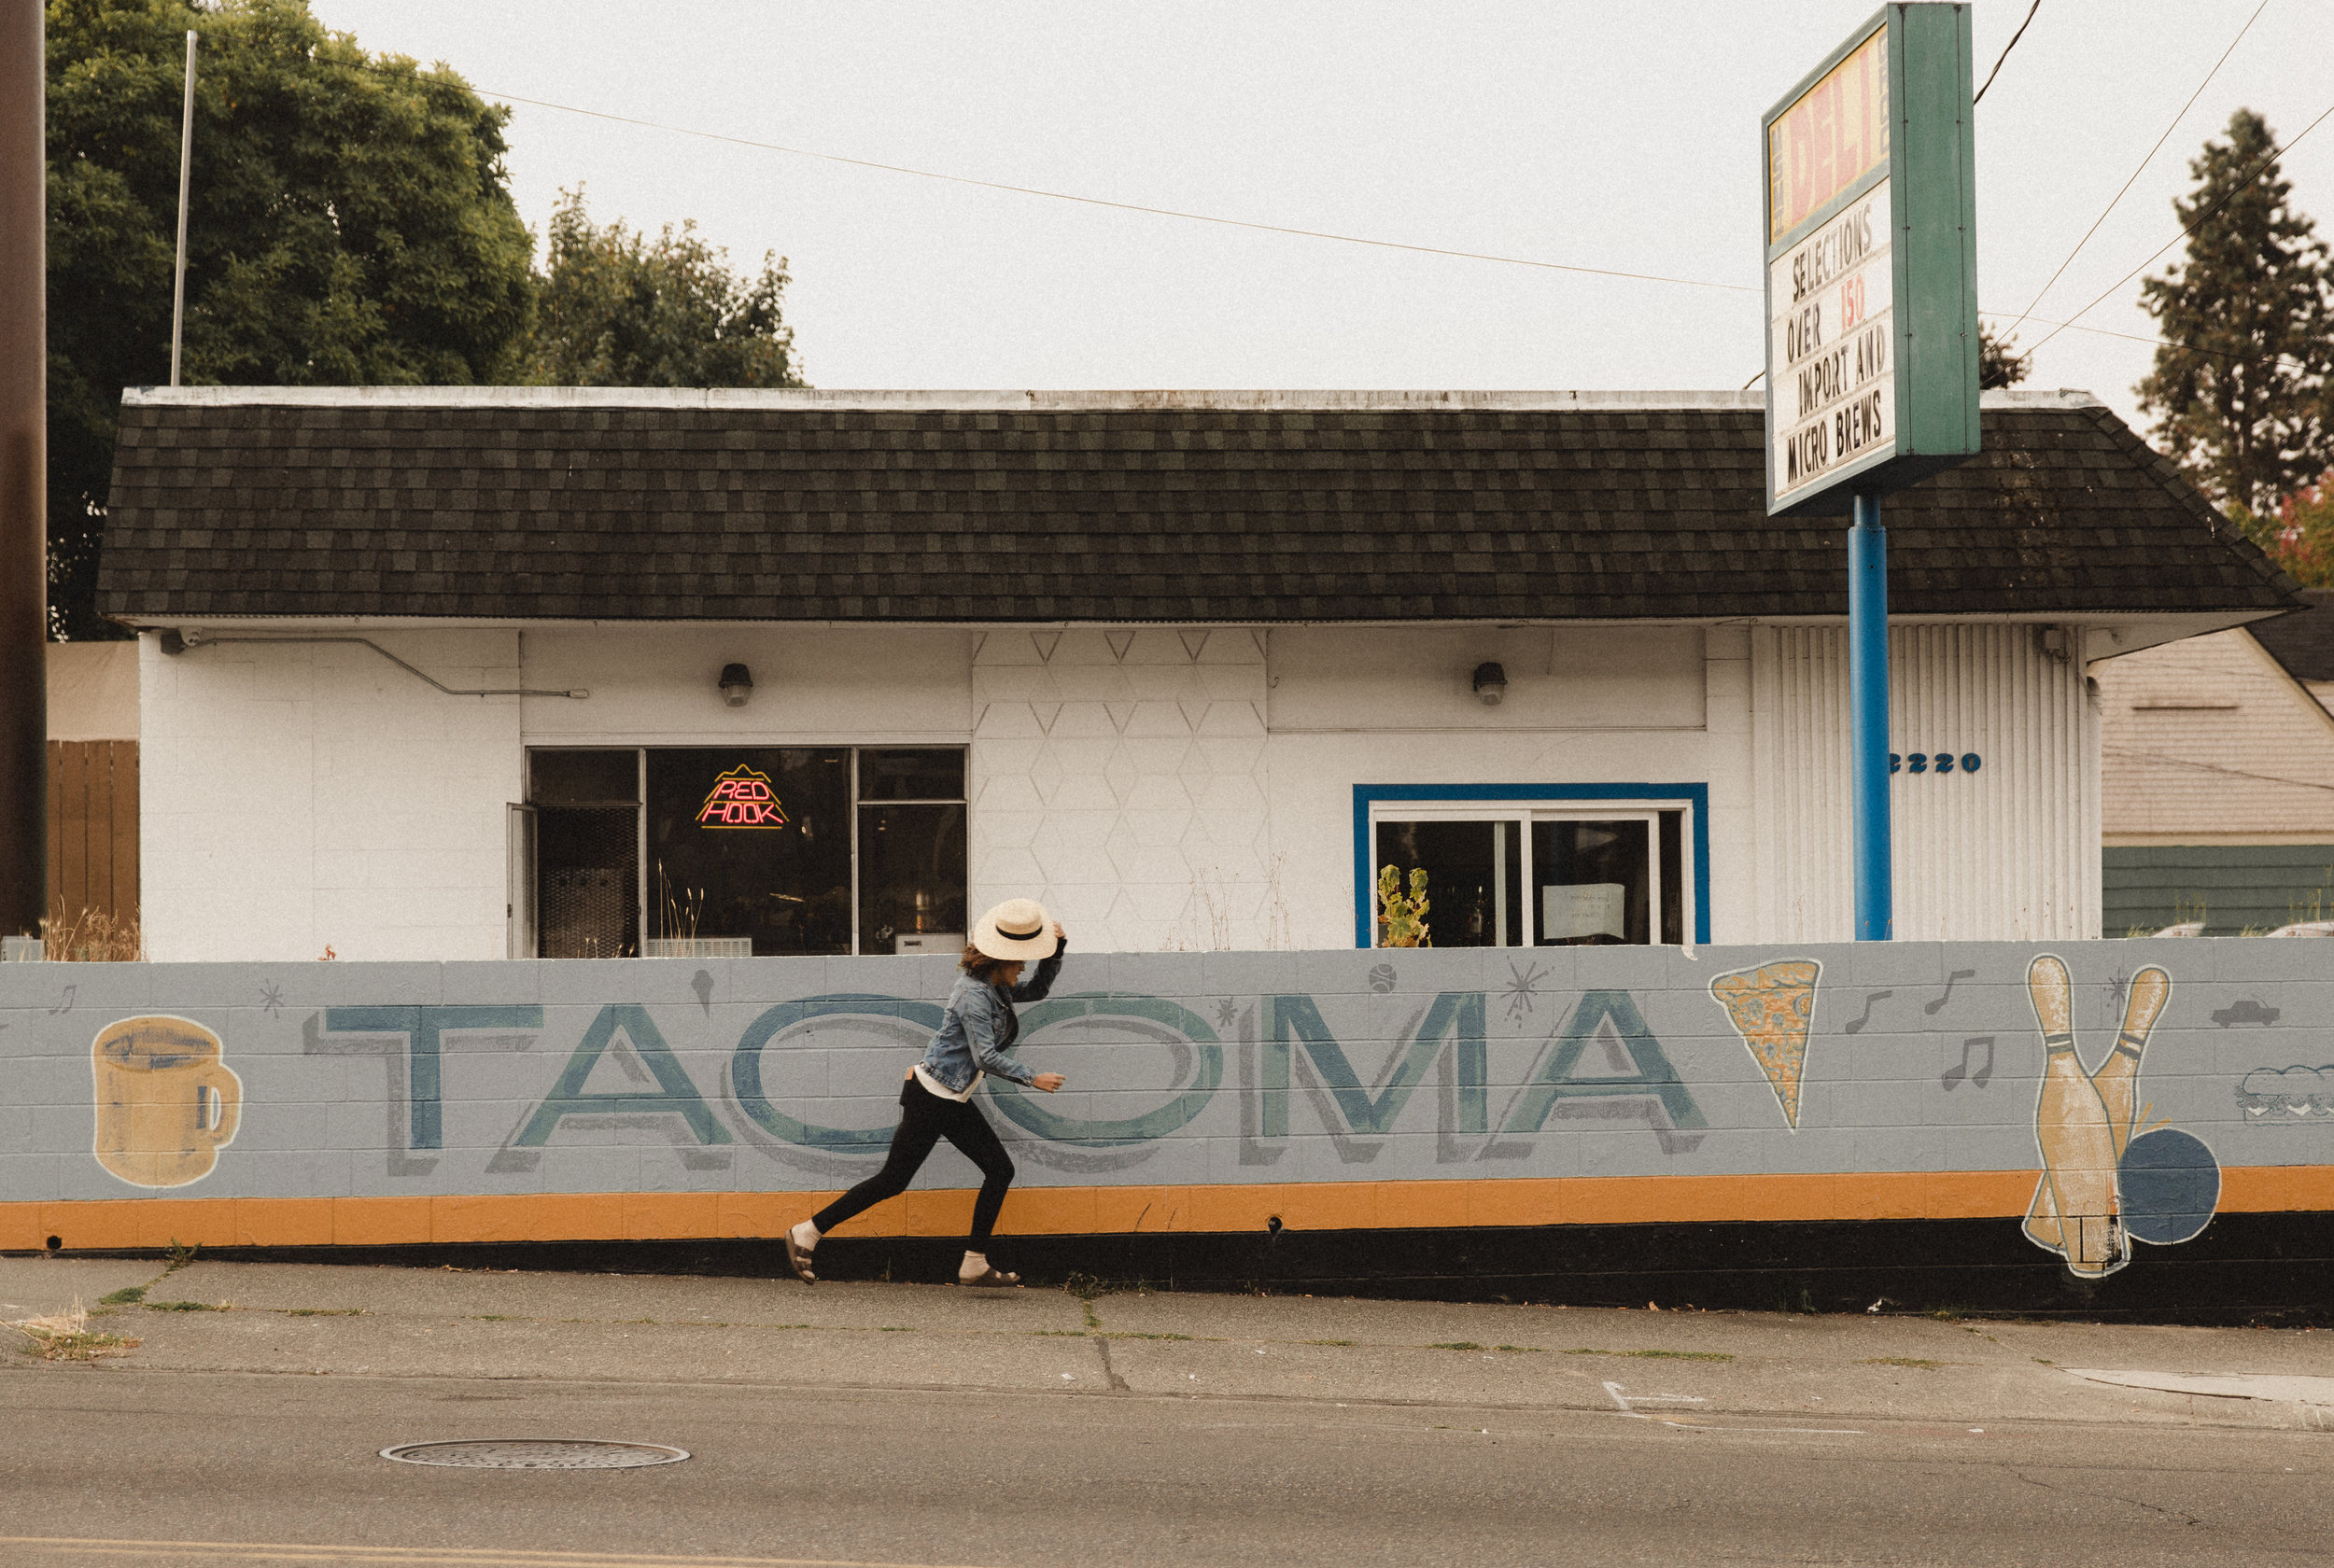 please enjoy this photo of me chasing my hat (per usual) in front of a little tacoma sign!